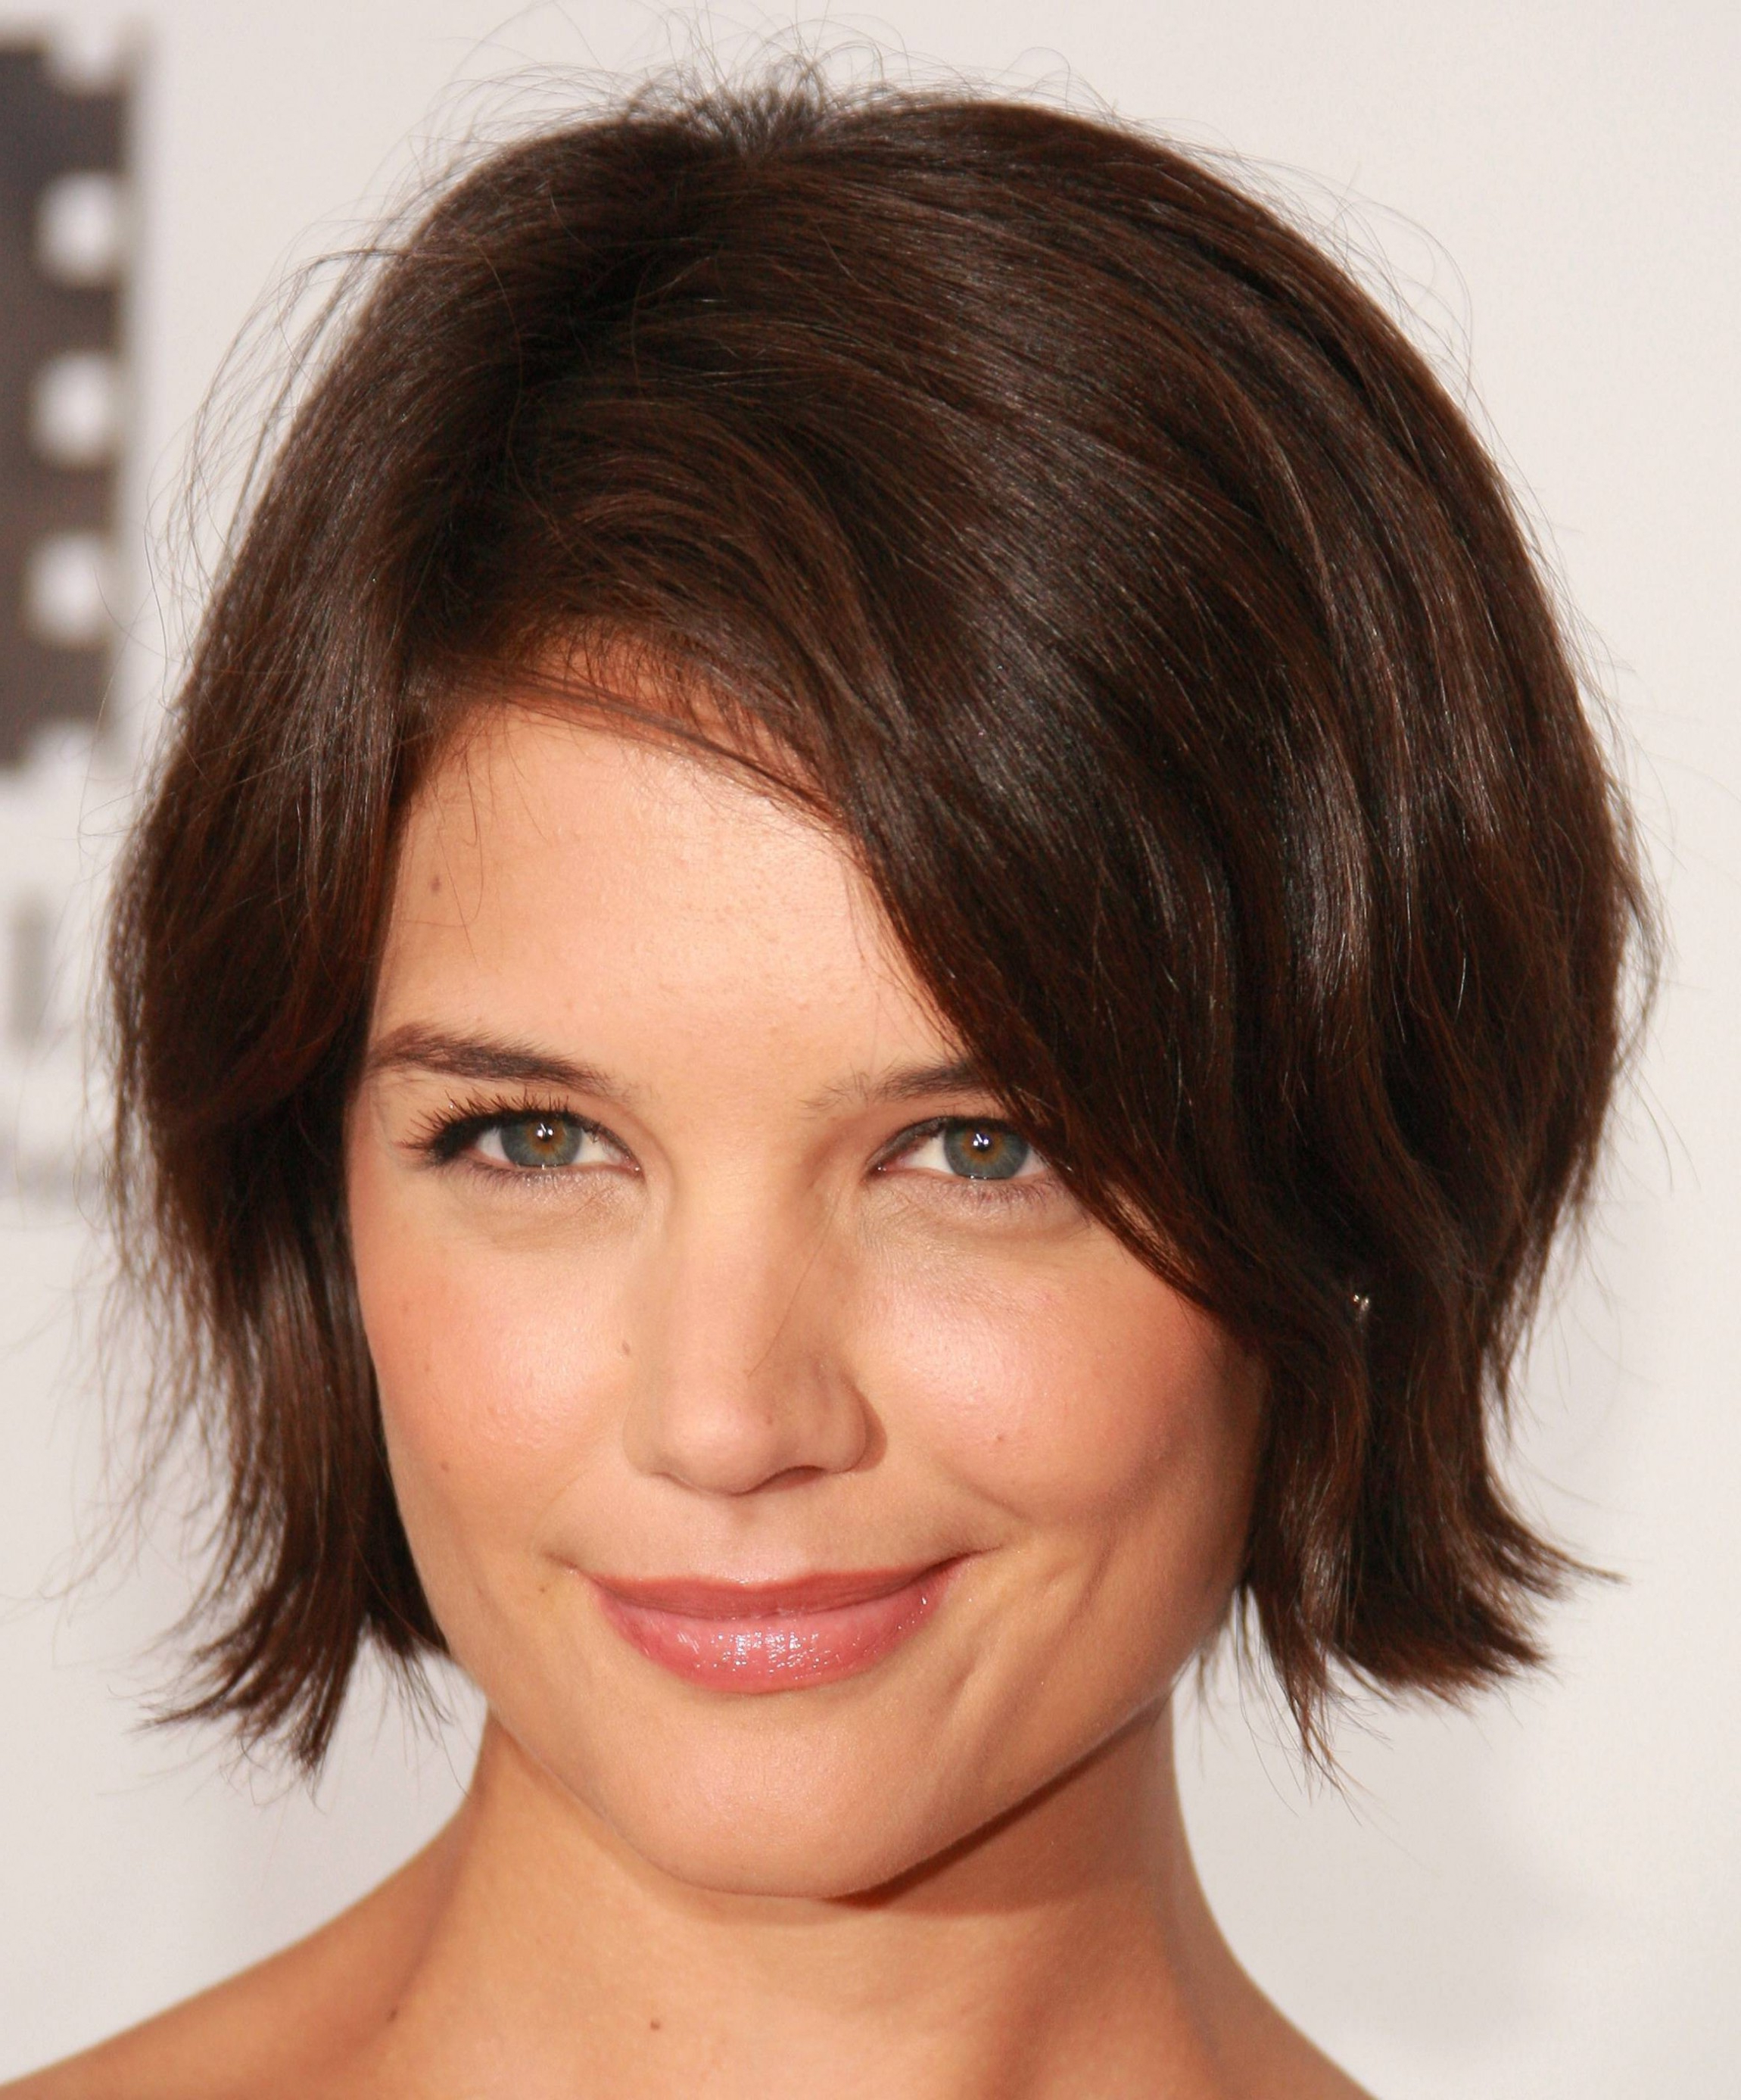 Best Short Hairstyles – Cute Hair Cut Guide For Round Face Shape Intended For Short Haircuts For Heavy Set Woman (View 15 of 25)